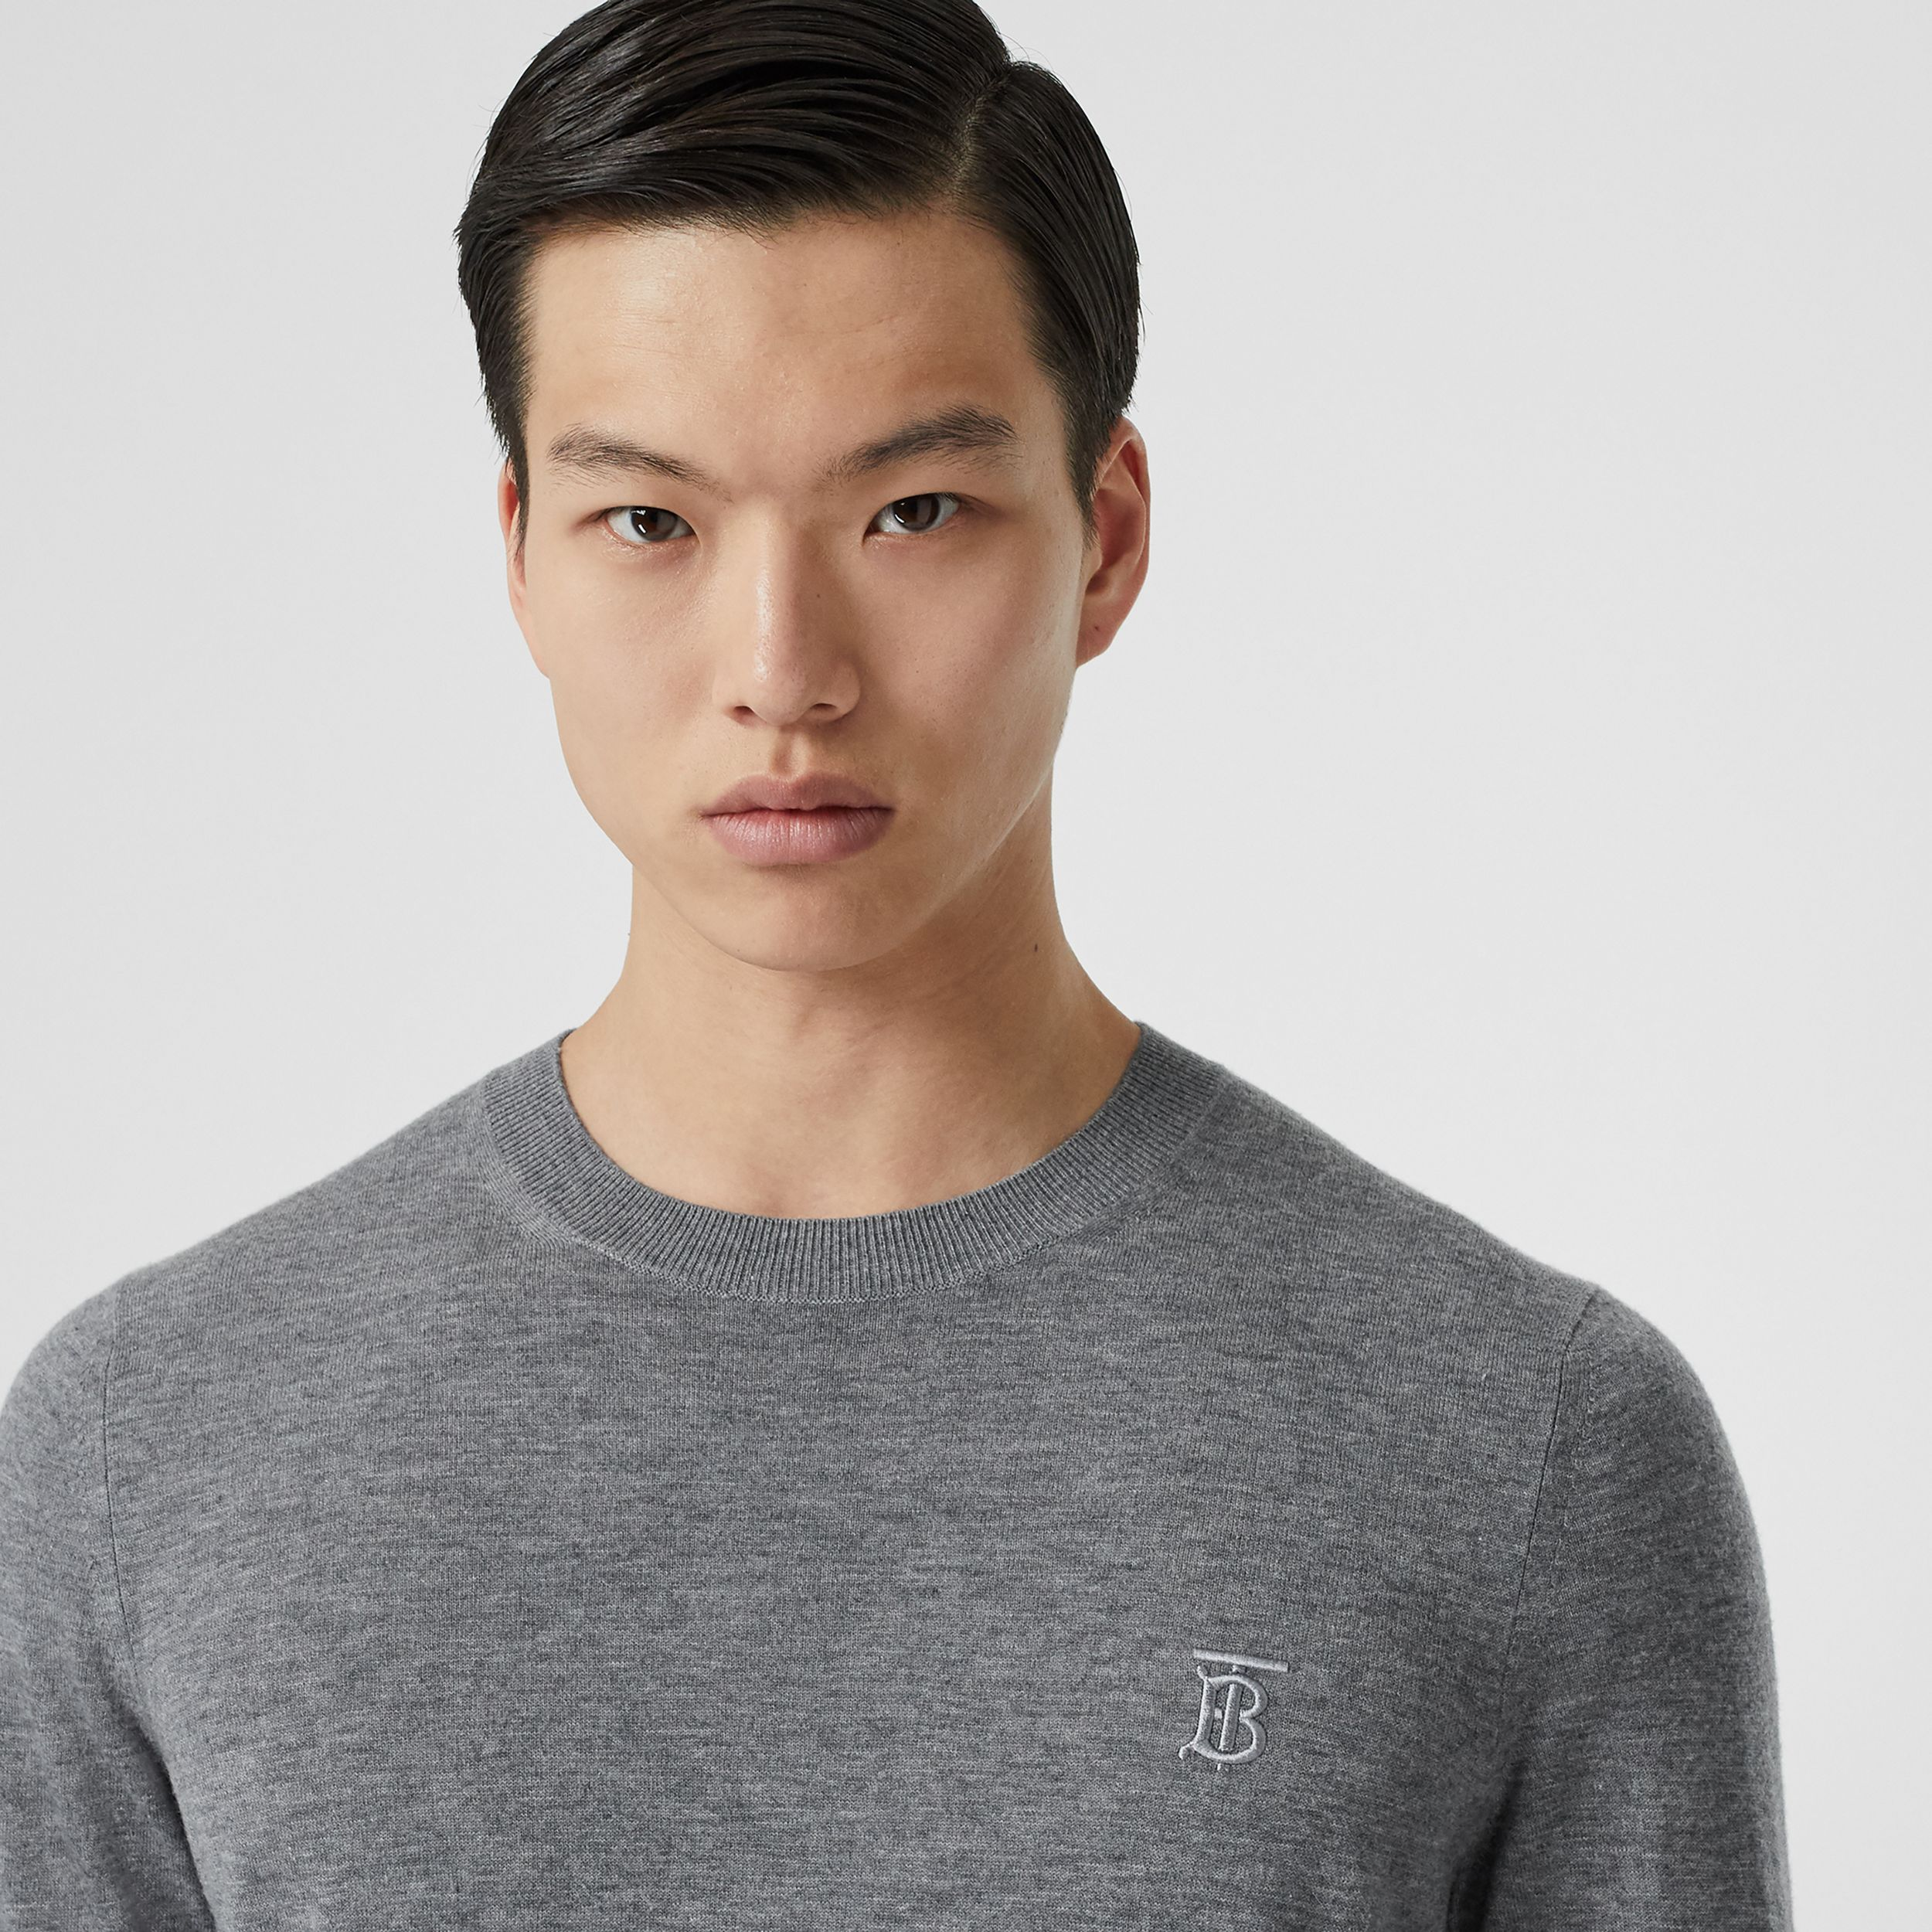 Monogram Motif Cashmere Sweater in Pale Grey Melange - Men | Burberry - 2